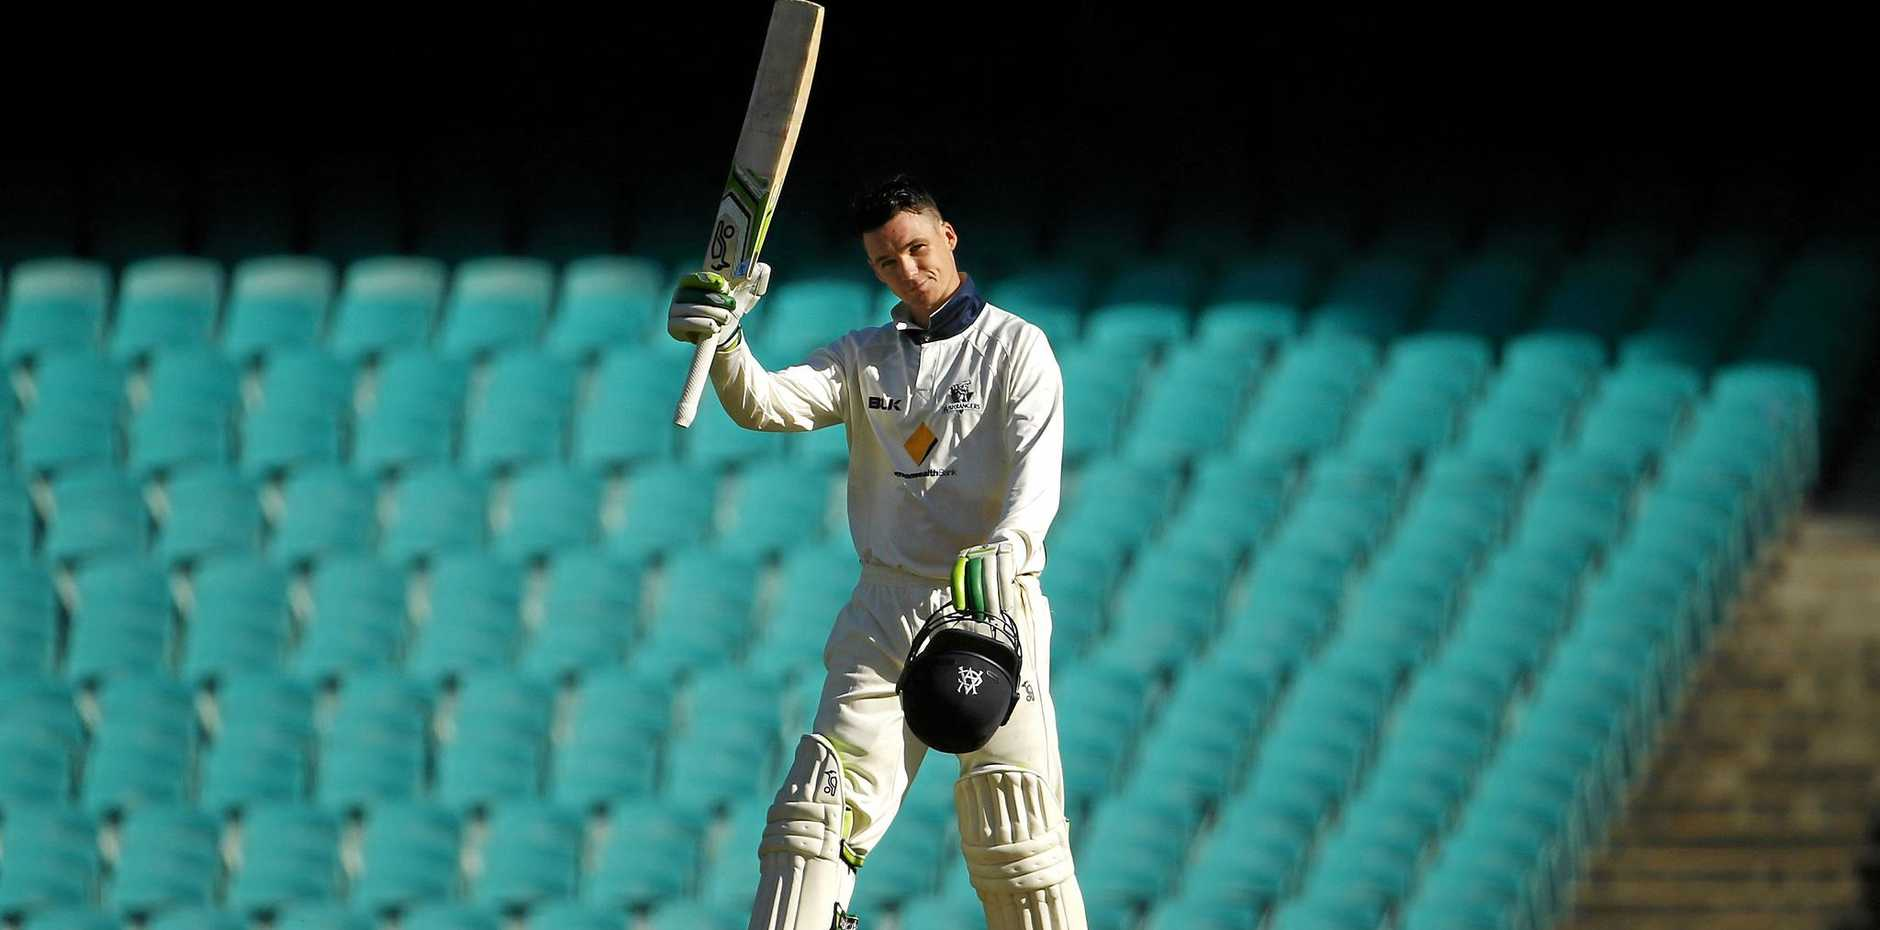 Victorian batsman Peter Handscomb raises his bat after scoring a century against New South Wales at the Sydney Cricket Ground.